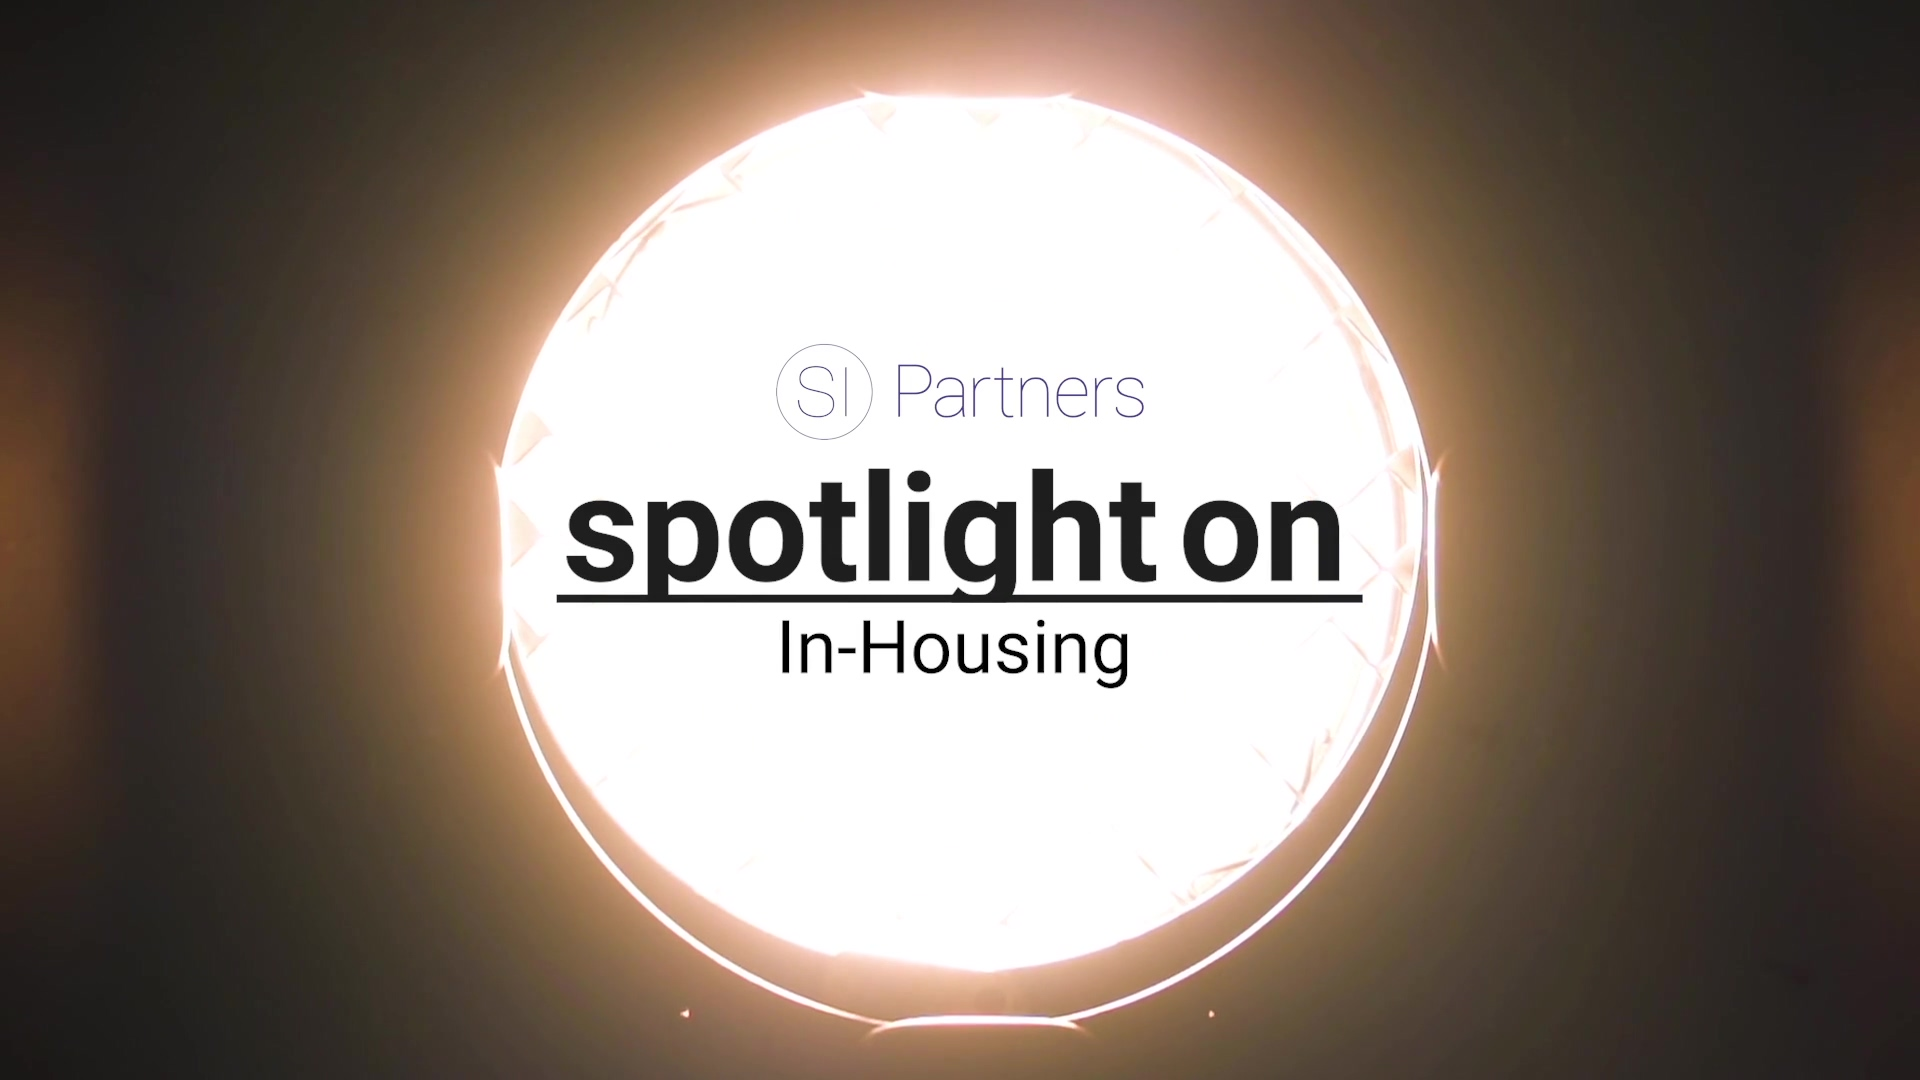 SI Partners Spotlight On In-Housing